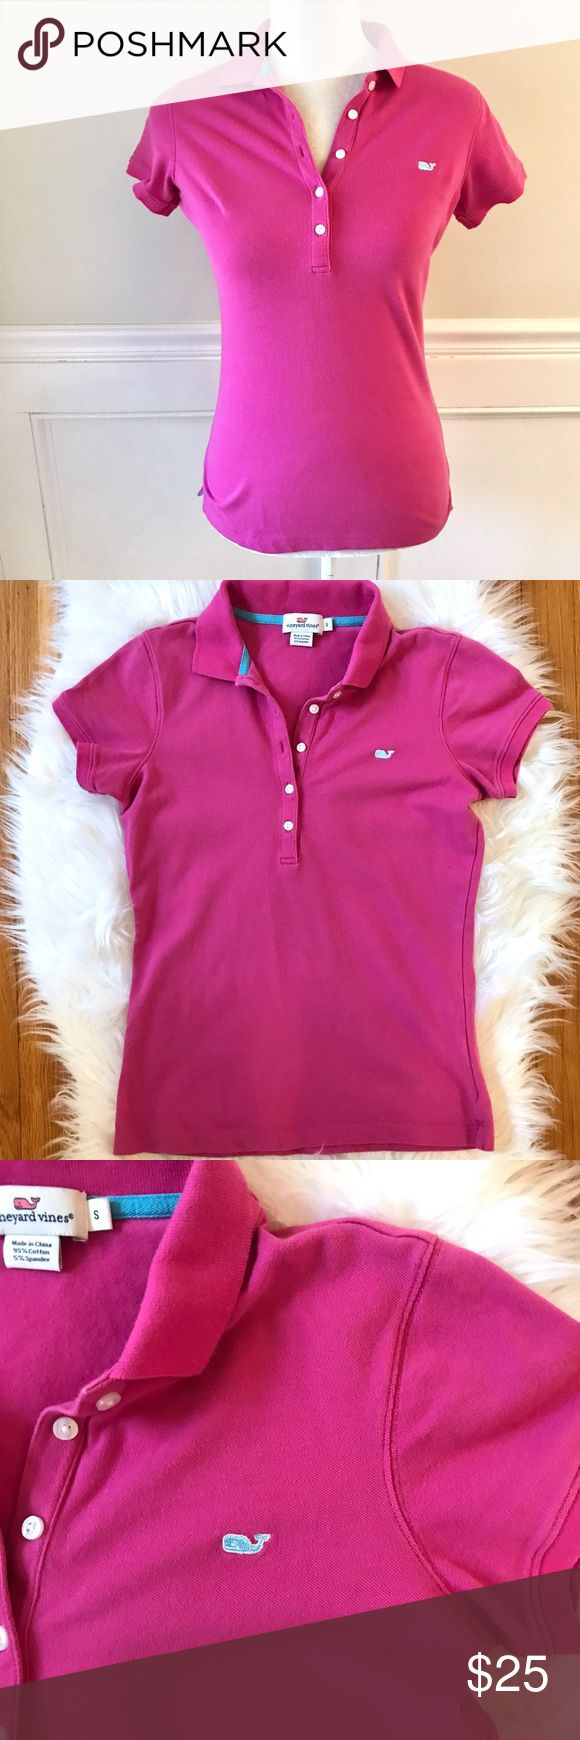 """VINEYARD VINES Bright Pink Cotton Polo Shirt Small Excellent preowned condition. Very soft and stretchy- 95% cotton/5% spandex. Figure flattering polo shirt with 5 buttons and embroidered whale logo. Pretty pink color with blue accents. Size S/Small.  Approximate measurements: Bust 16"""" across Shoulder to hem 23.25"""" Vineyard Vines Tops"""